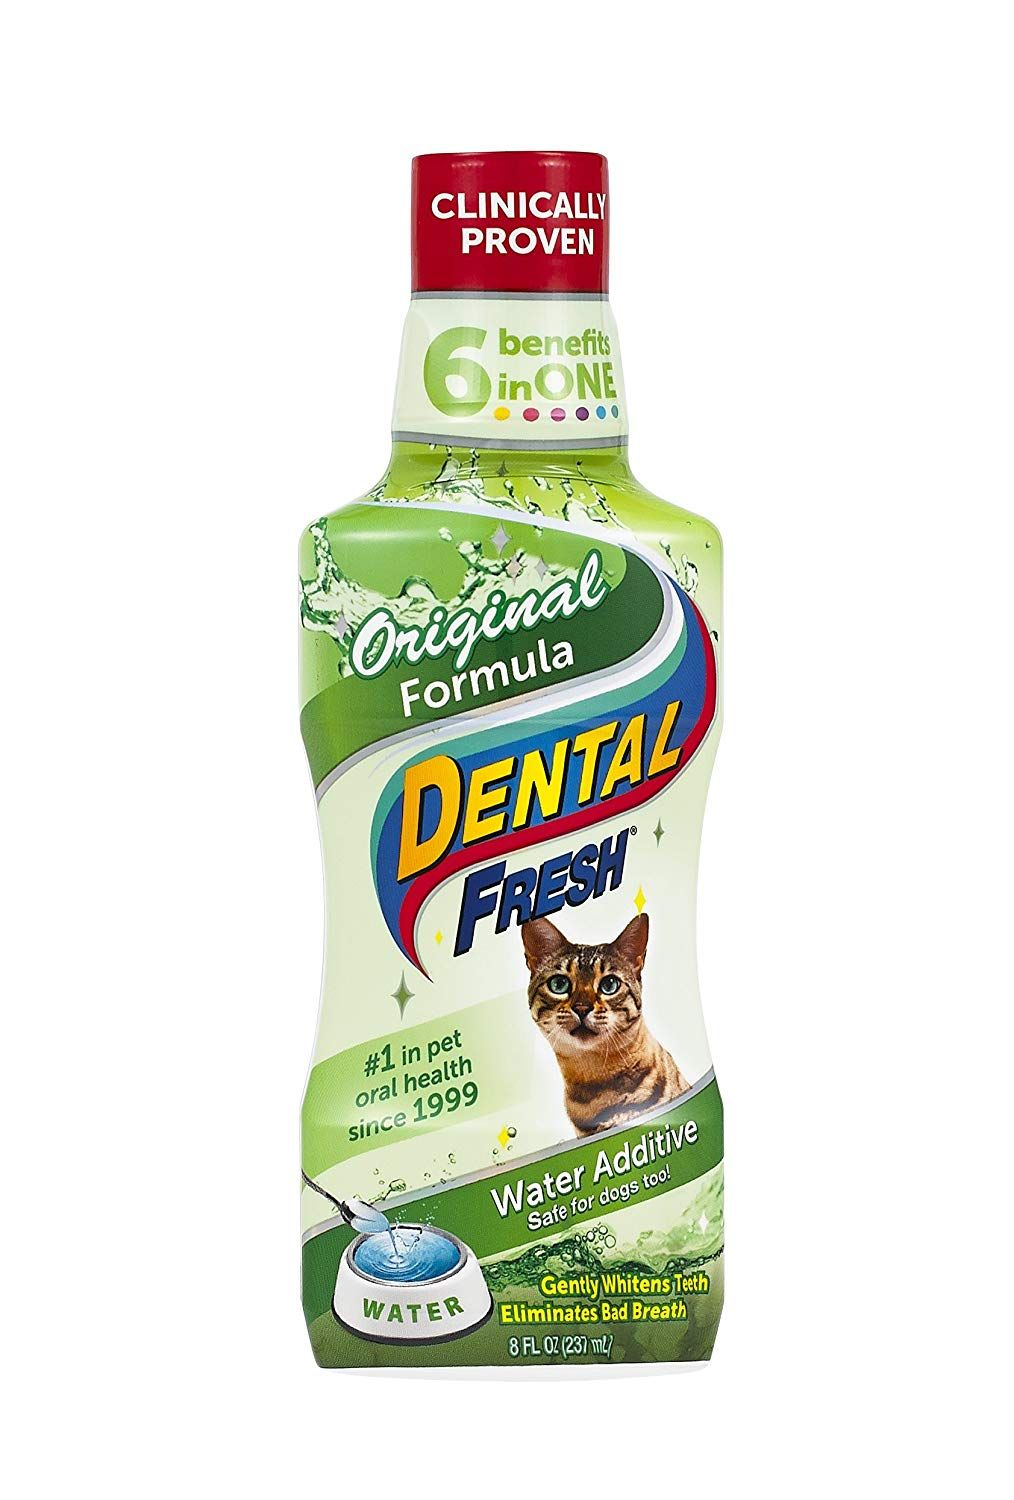 Synergylabs Dental Fresh Water Additive Original Formula For Cats Clinically Proven Simply Add To Cat S Water Bowl To Whi Heal Cavities Dental Gum Disease